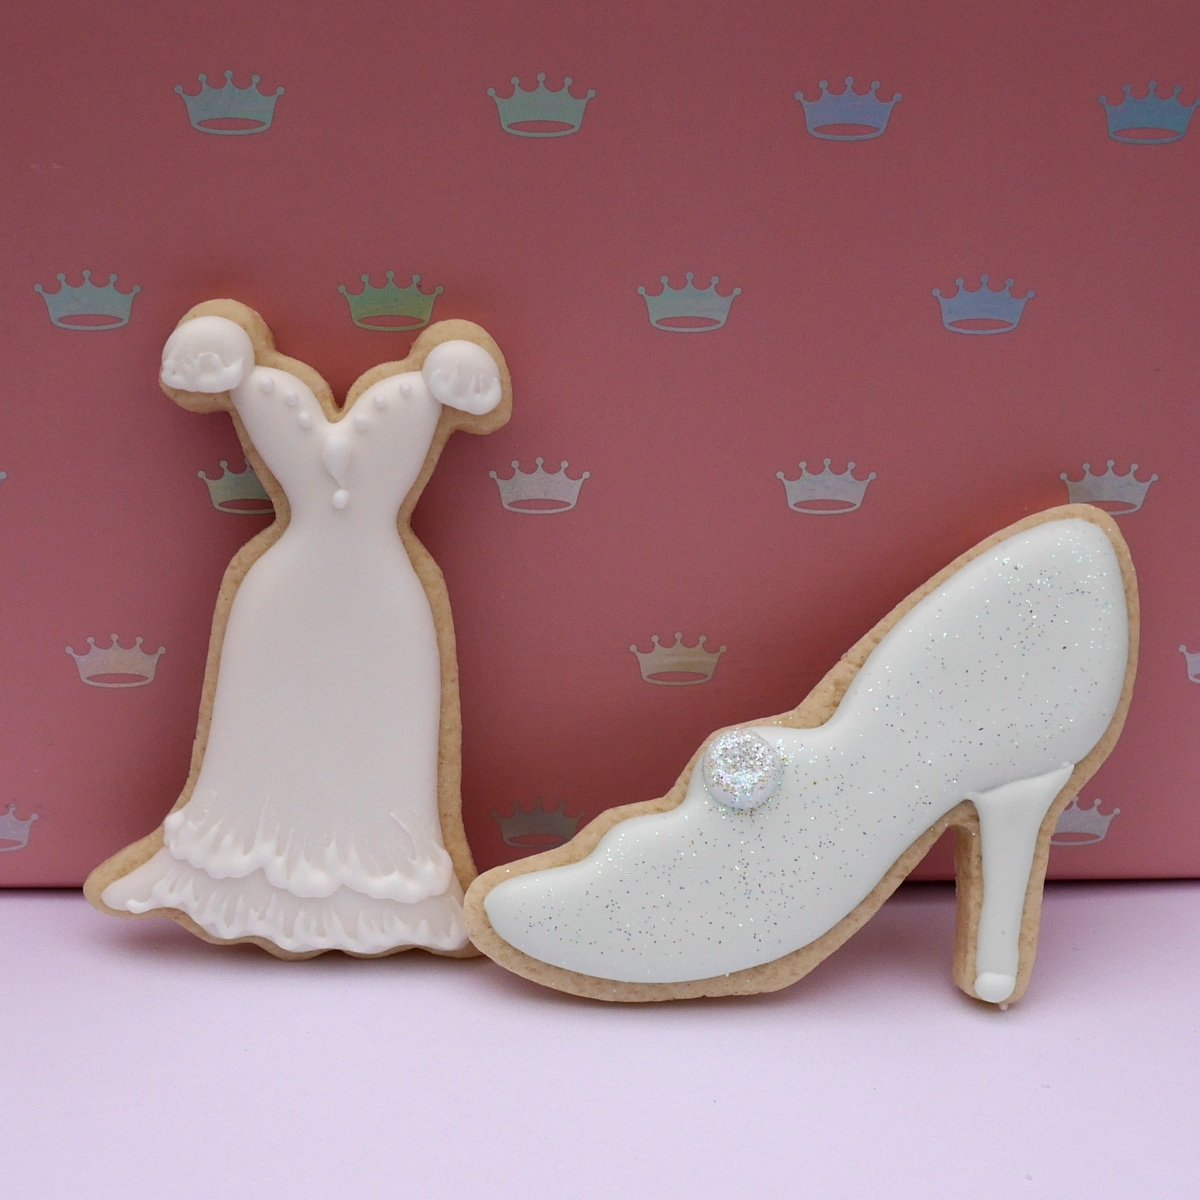 Princess Kingdom Cookie Cutter Set - 10 Piece Stainless Steel by Sweet Cookie Crumbs (Image #8)